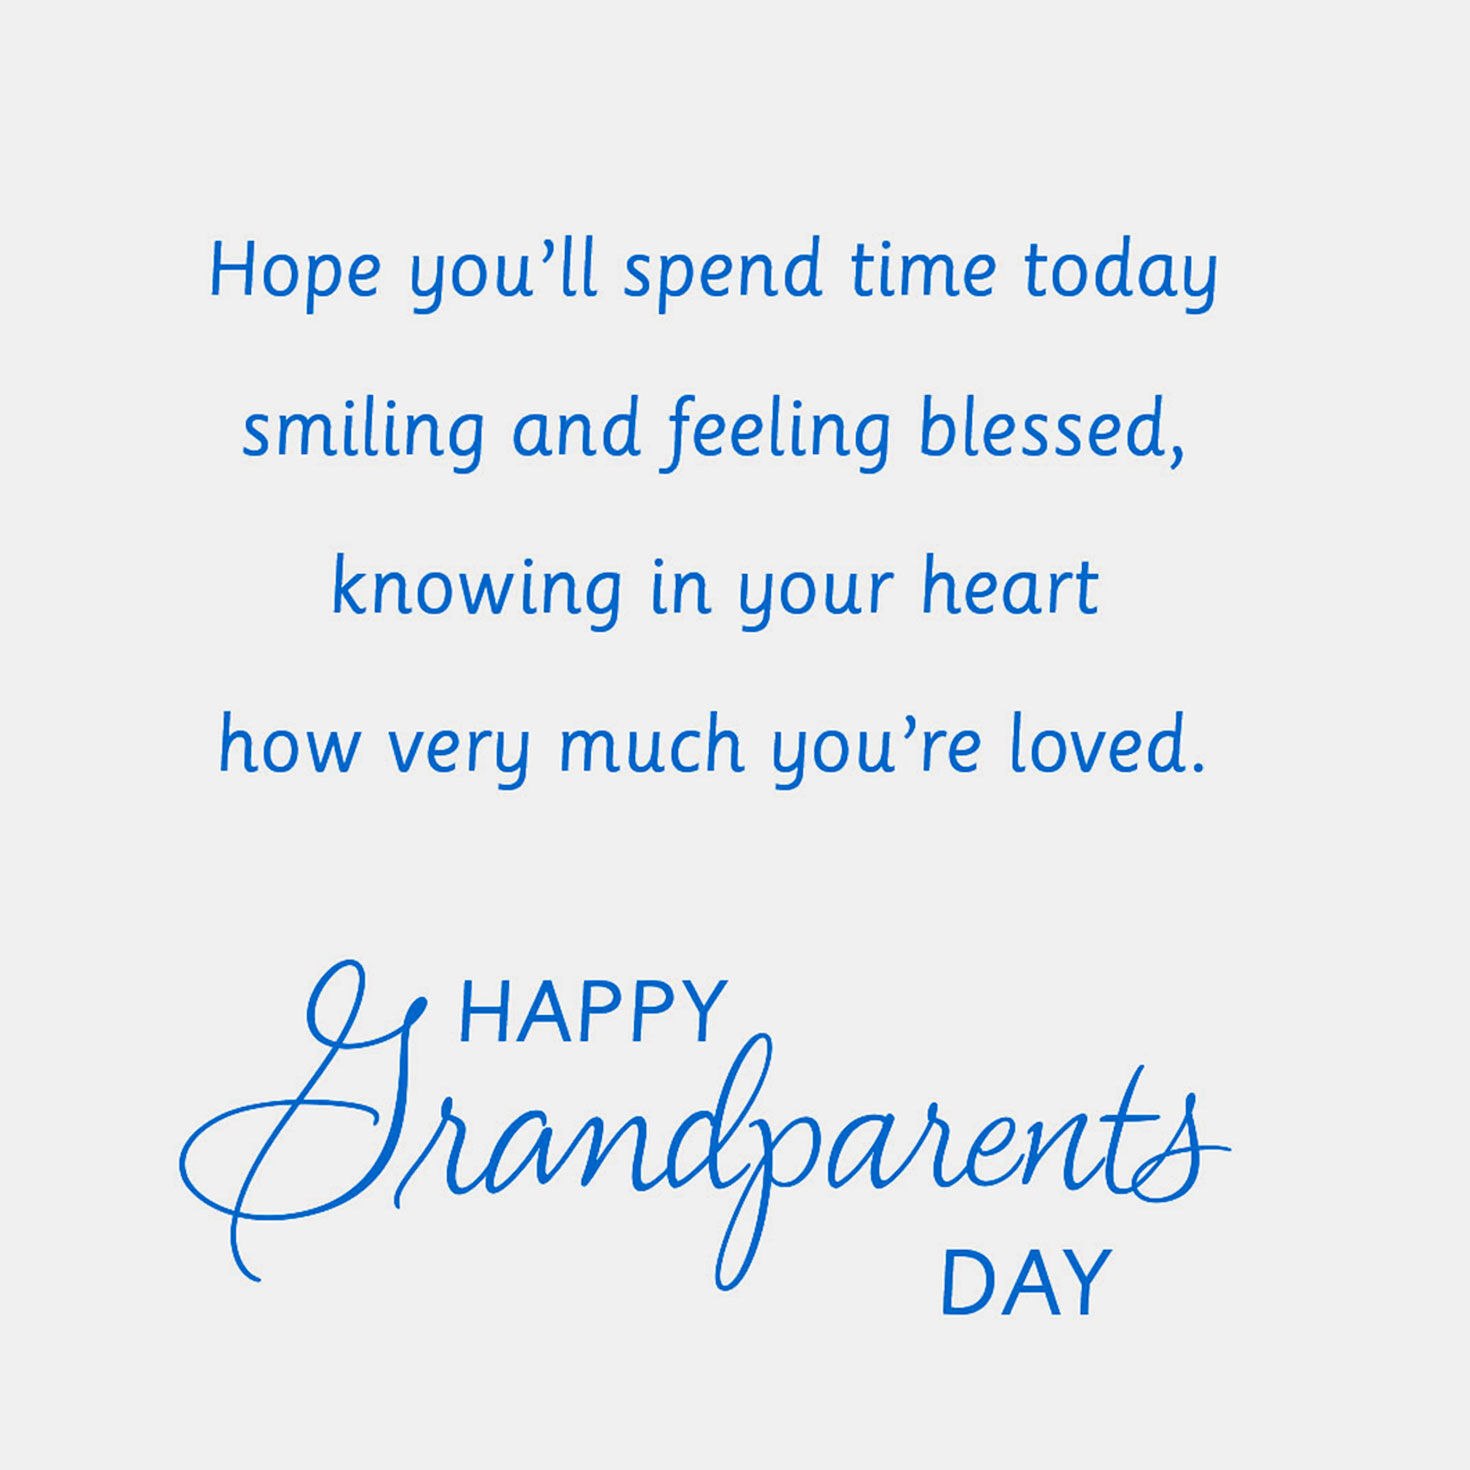 photograph relating to Printable Grandparents Day Card identify Grandparents Working day Playing cards Hallmark